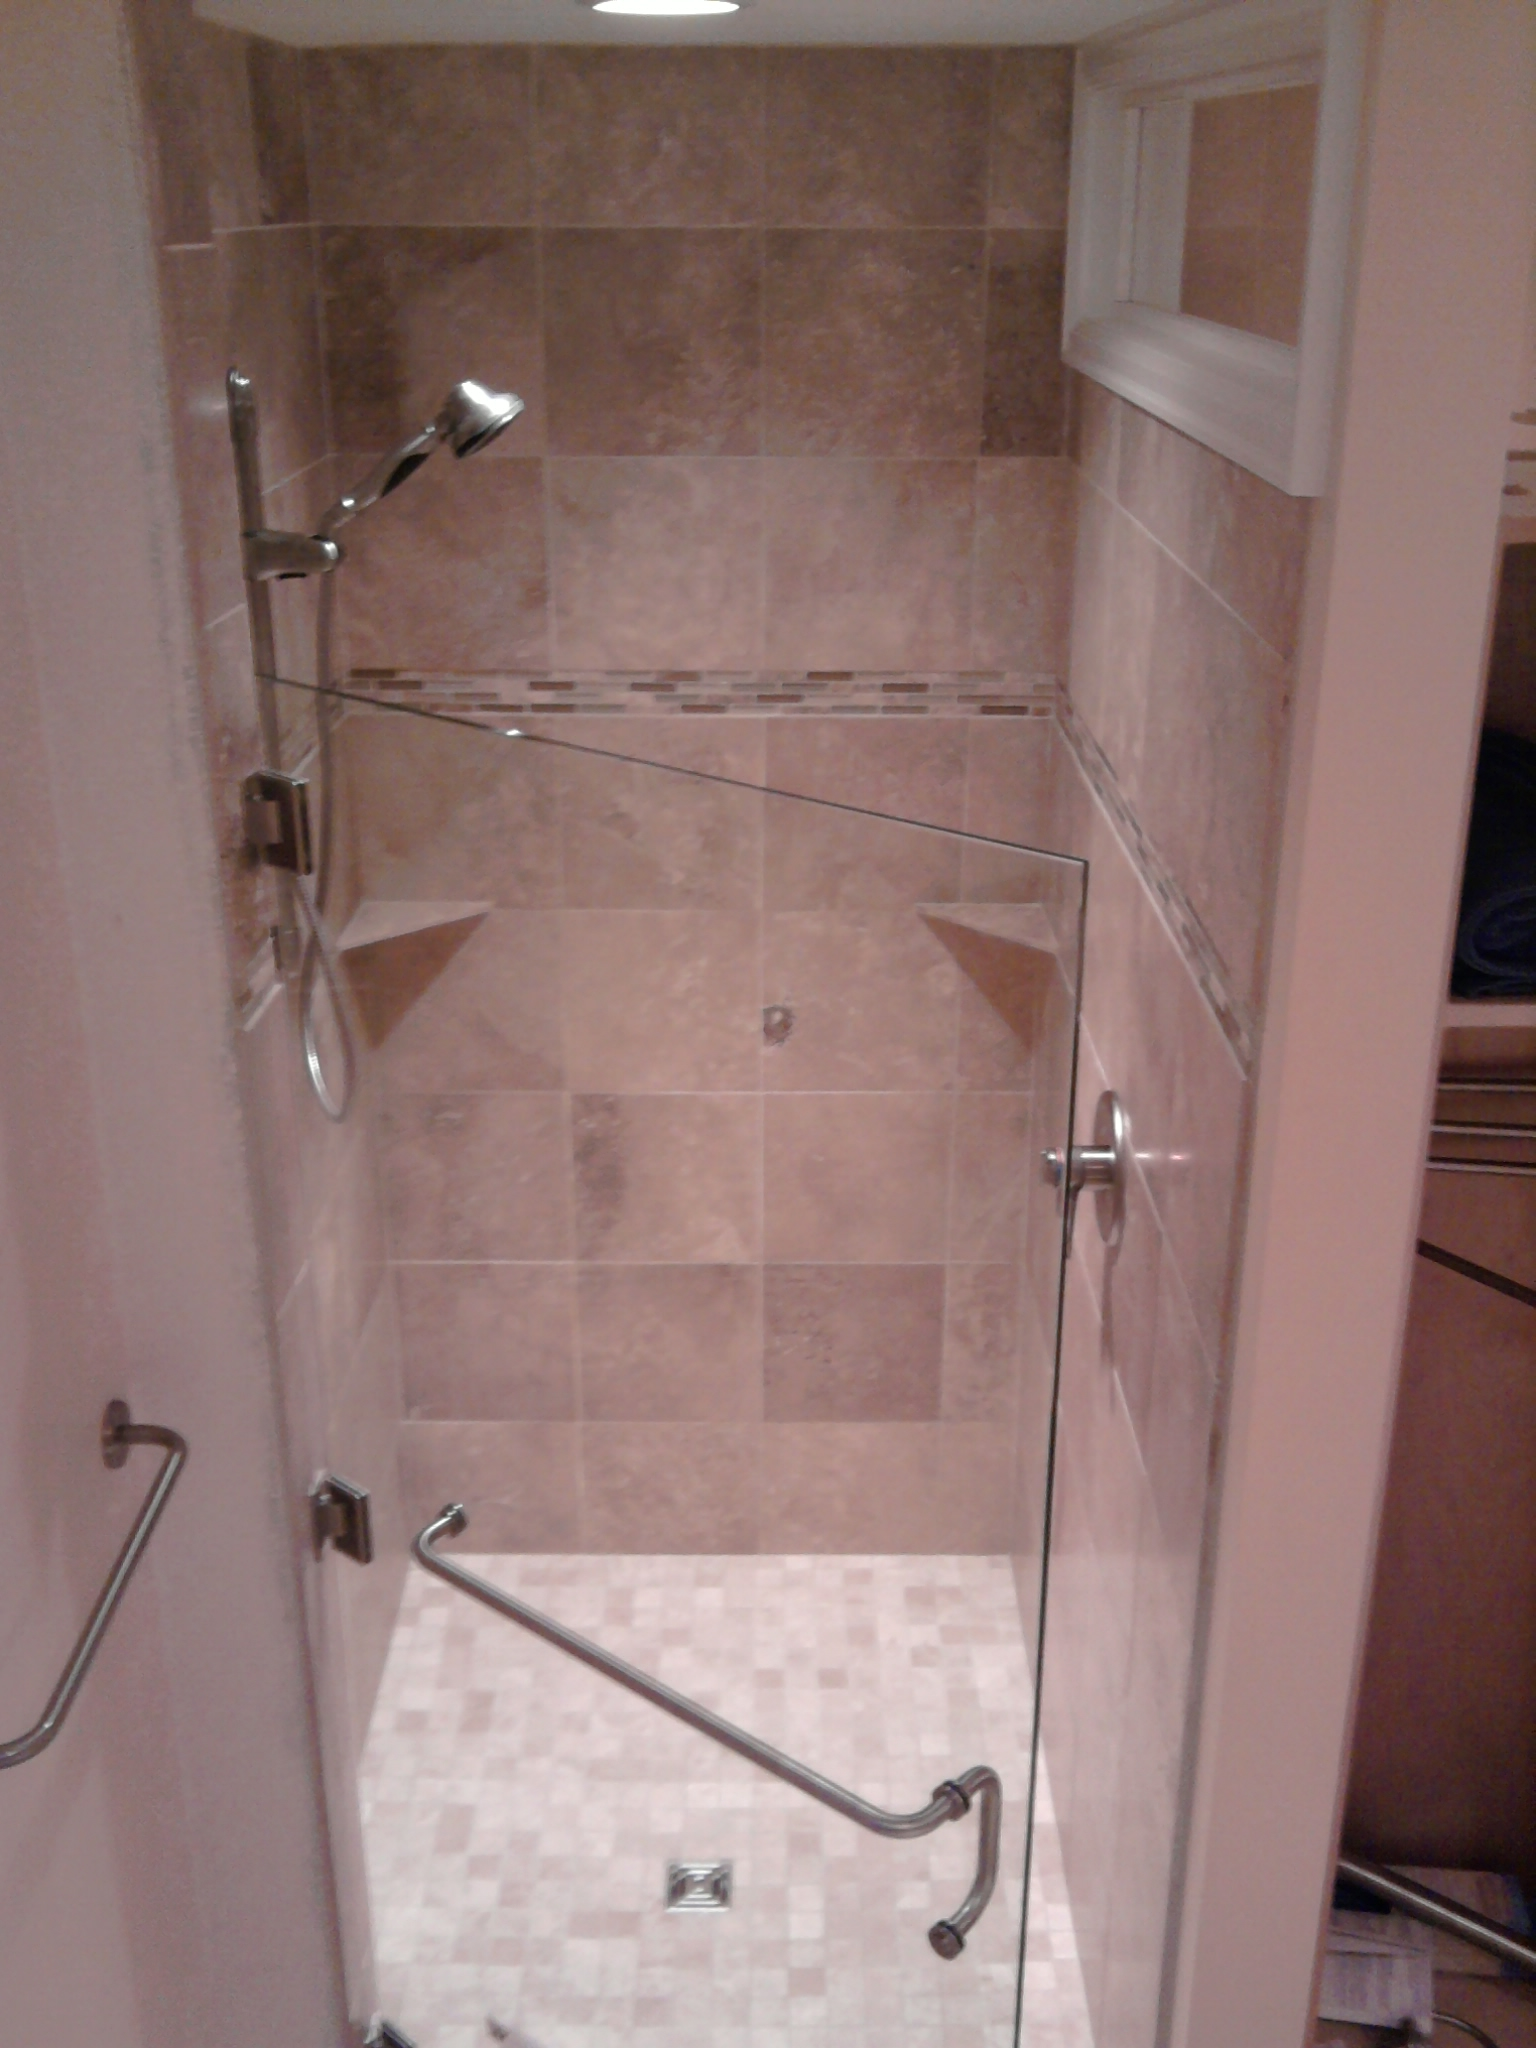 We do so love our stand up showers. - Old School Renovations, Inc.